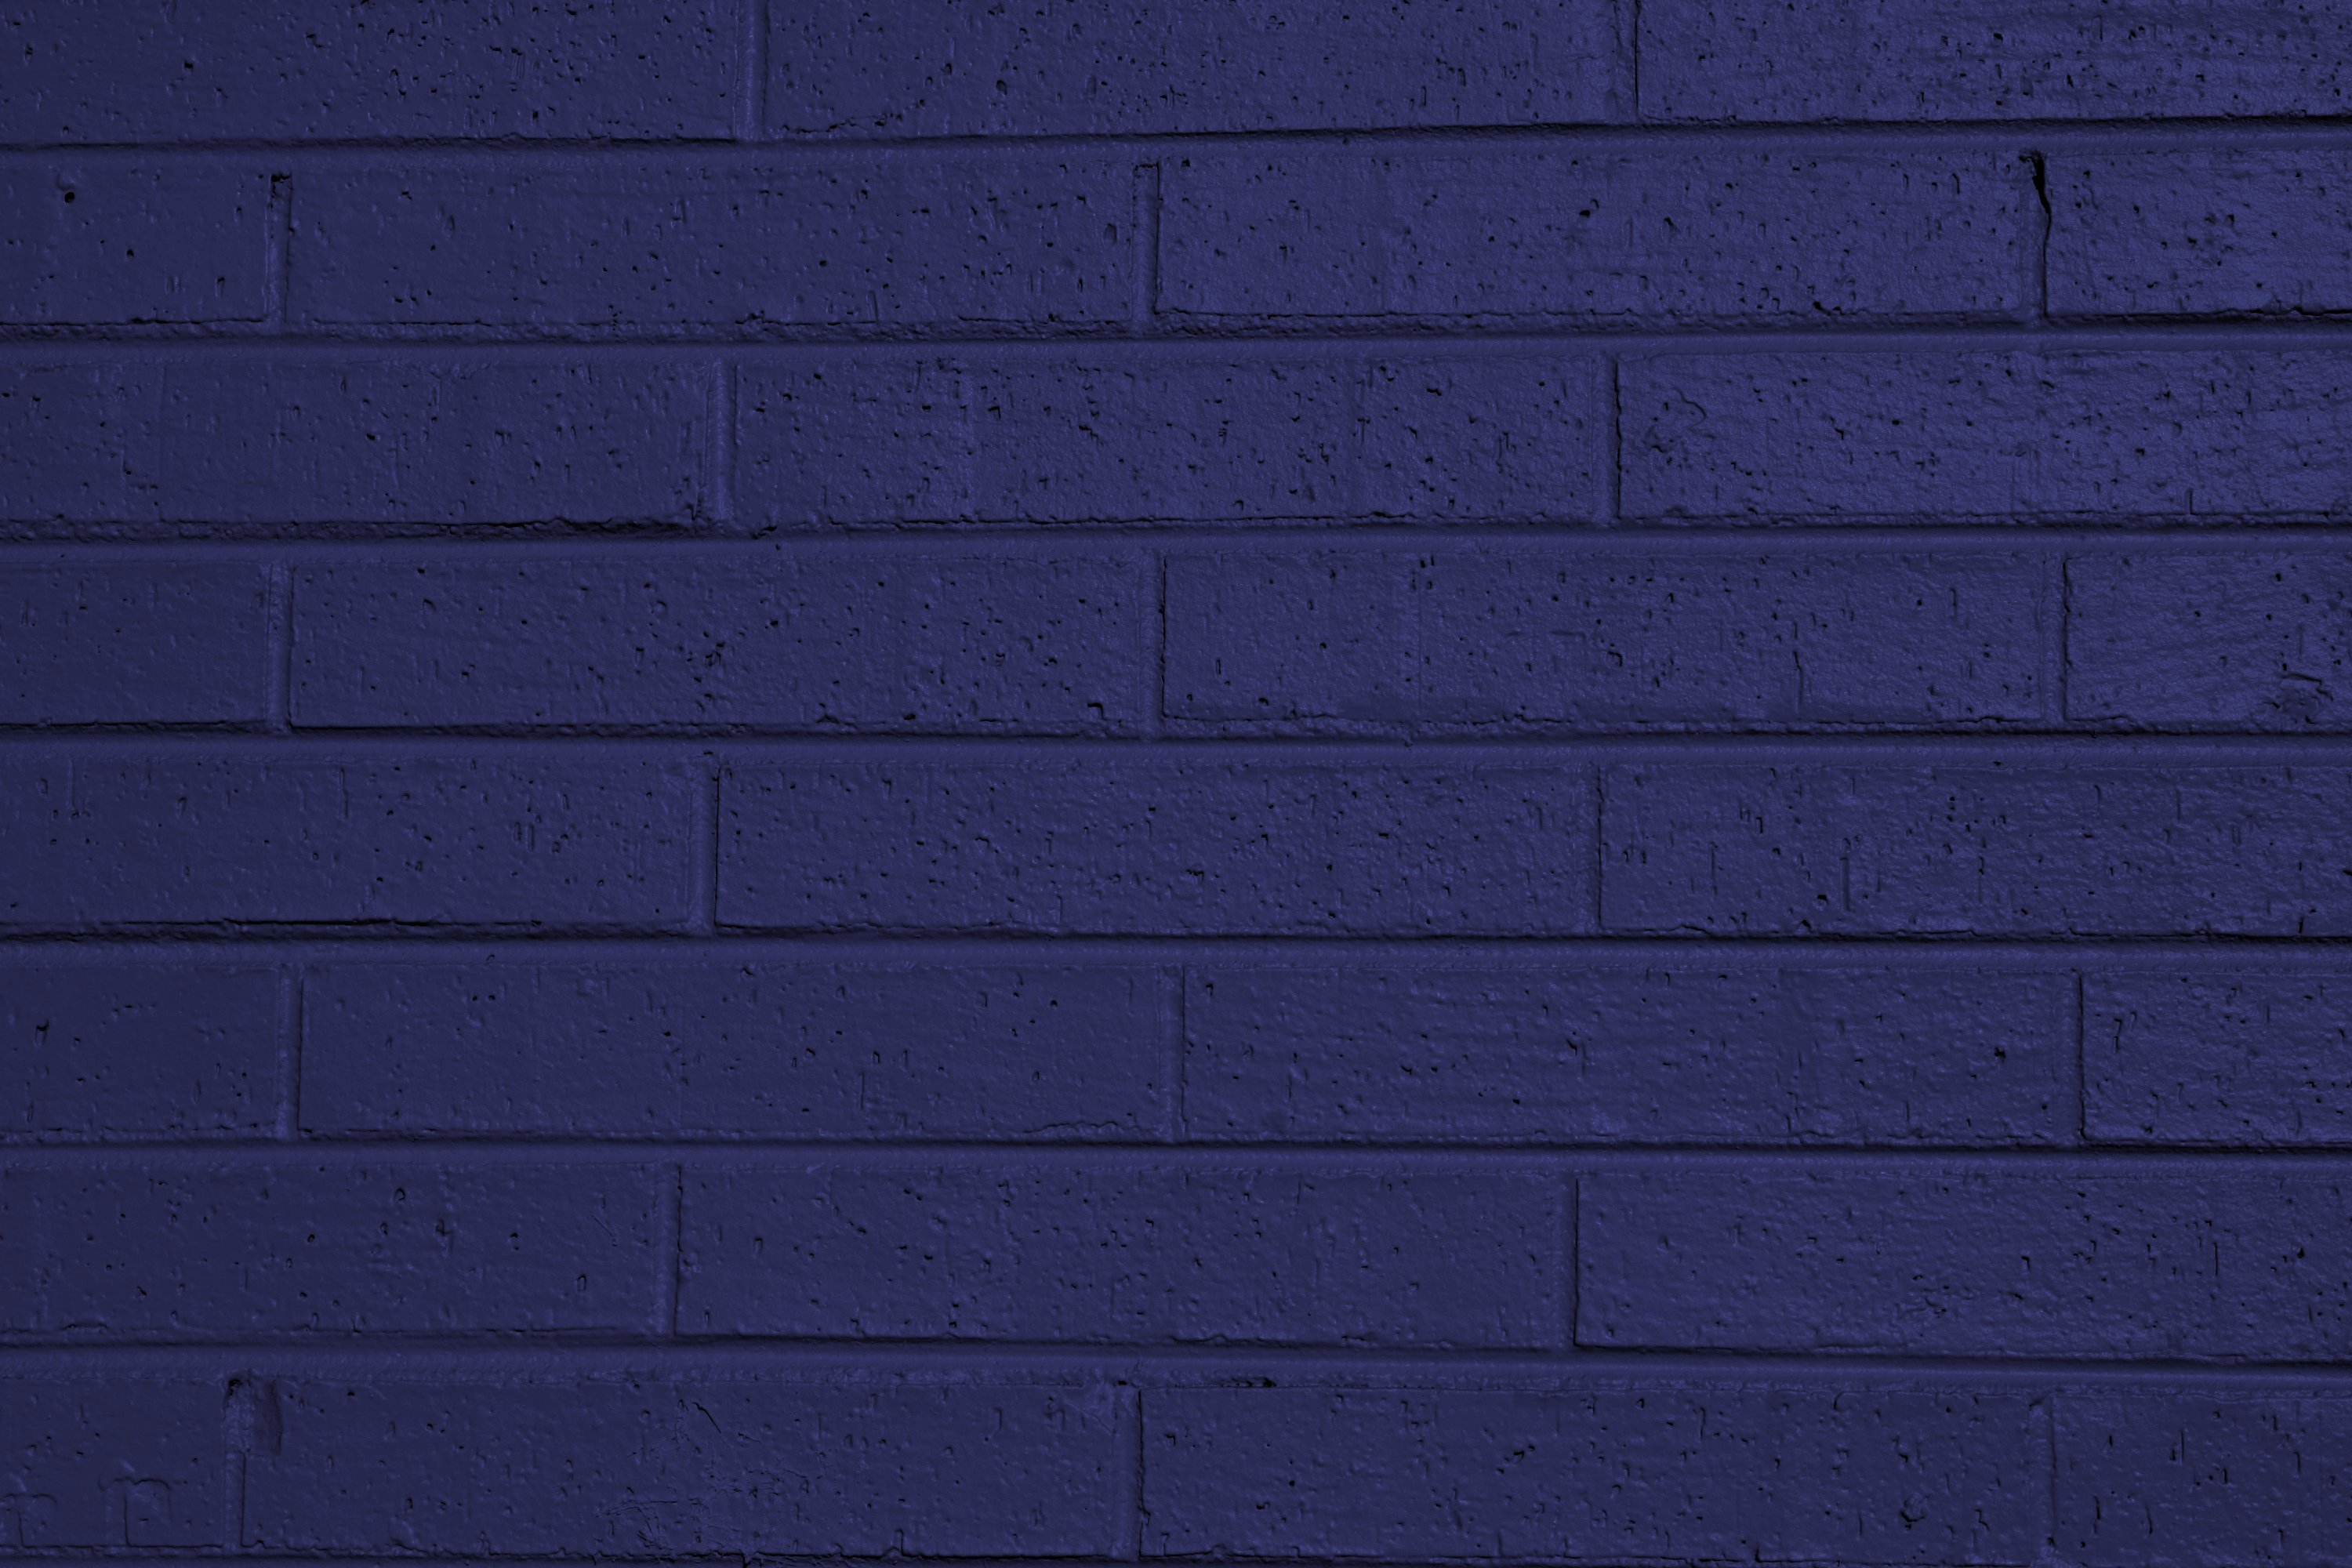 Blue painted brick wall texture picture free photograph for Dark blue wallpaper for walls